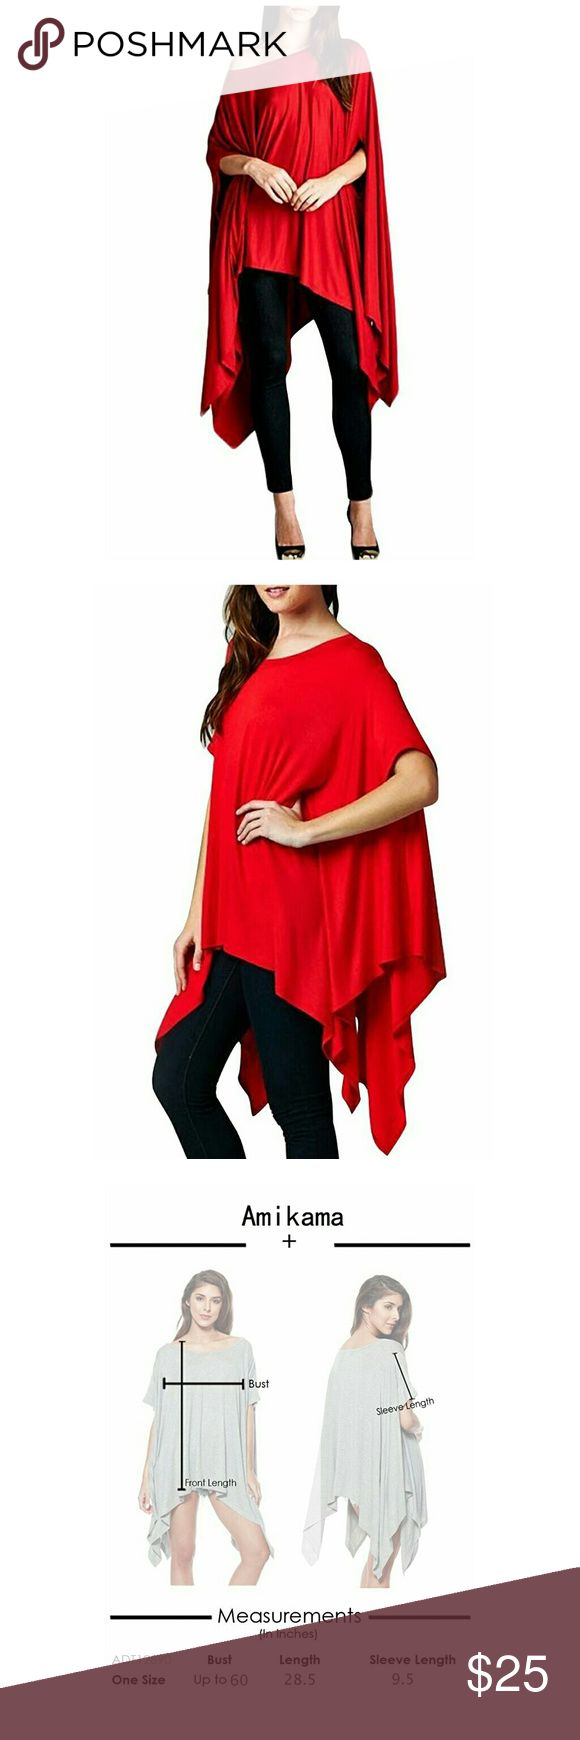 Batwing Sleeve Off Shoulder Hem Loose Cloak top Cotton Blended,soft,wrinkle-free TinyHi Women Glamour Sexy New Arrival Asymmetry Loose Tunic Tops Scoop Neck Short Sleeve Dress TinyHi Women Batwing Sleeve Off Shoulder Irregular Hem Loose Cloak Tops Tunic Loose Fit Short Sleeve Tunic with Asymmetrical Hemline able to be paired with pants or leggings underneath. Loose Fit Short Sleeve Tunic with Asymmetrical Hemline Hand Wash Cold /Do Not Bleach/Hang Dry Tops